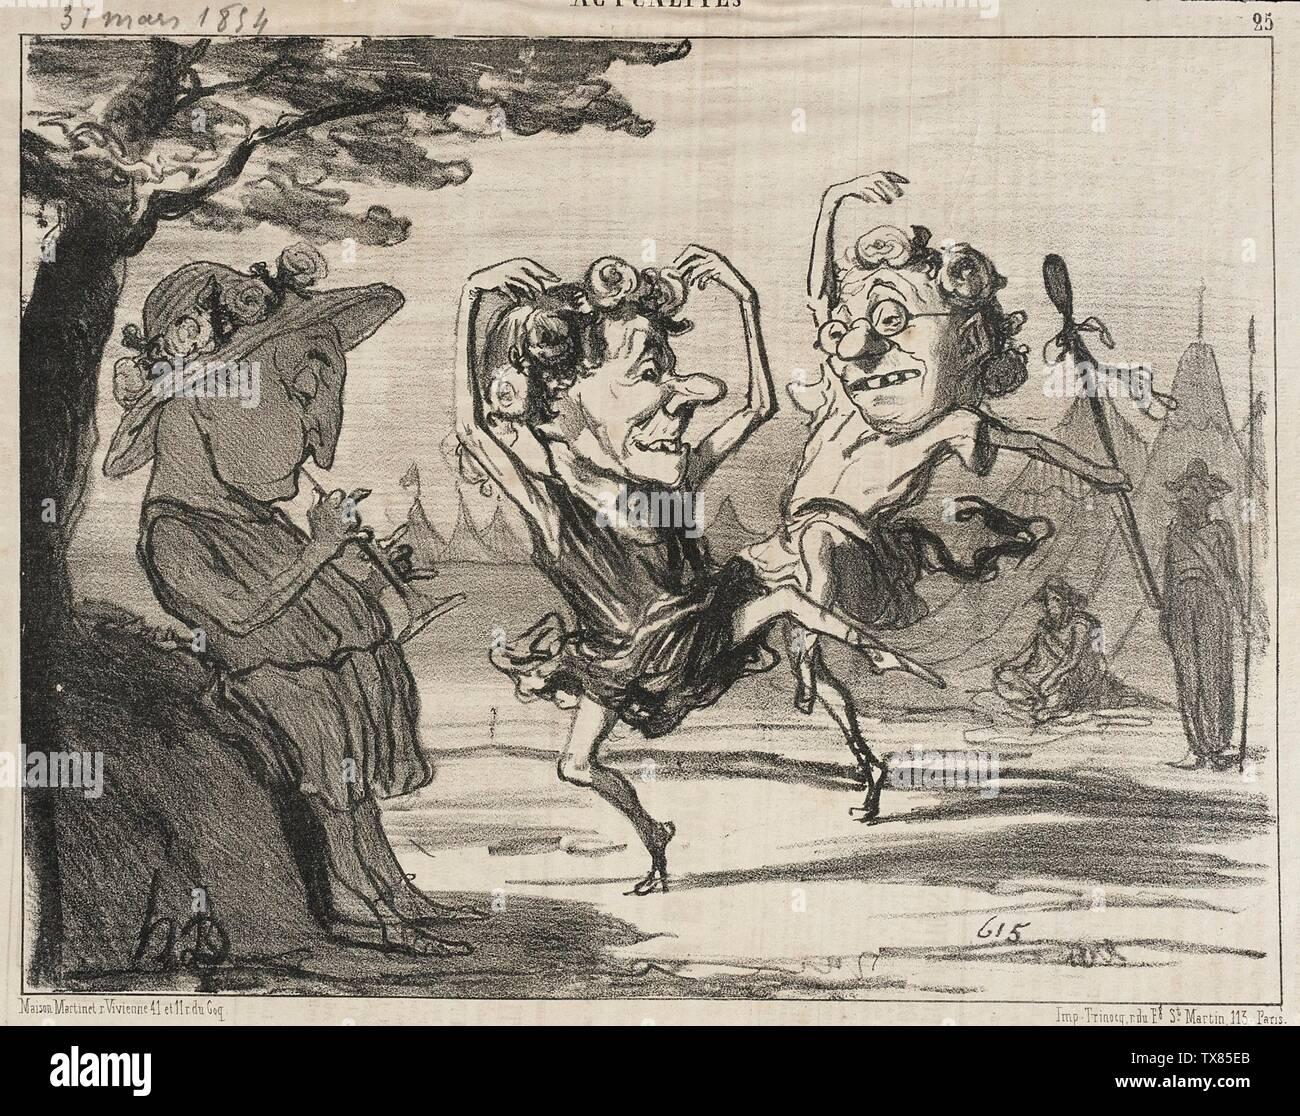 'Les trois Disciples de Mr. Cobdem se livrant...; English:  France, 1854 Series: Les Cosaques pour rire, no. 2 Periodical: Le Charivari, 28 March 1854 Prints; lithographs Lithograph Sheet: 8 1/8 x 10 5/8 in. (20.64 x 26.99 cm) Gift of Mrs. Florence Victor from The David and Florence Victor Collection (M.91.82.284) Prints and Drawings; 1854date QS:P571,+1854-00-00T00:00:00Z/9; ' - Stock Image